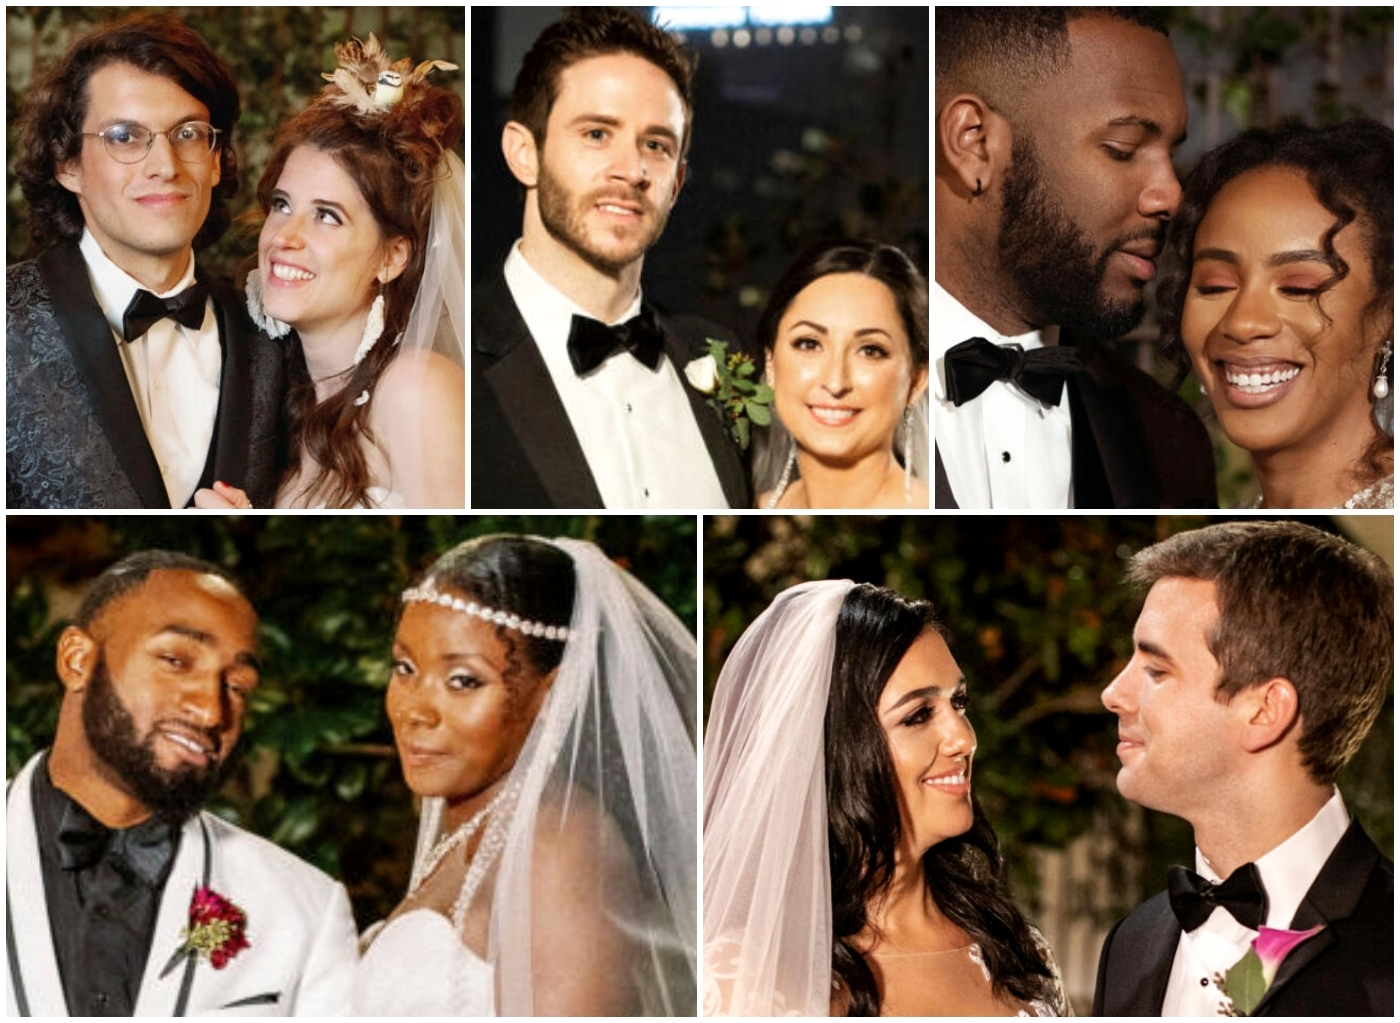 'Married At First Sight' Season 11 Cast Update: Where Are They Now? Find Out Which Couples Are Still Together and Who's Split Up and Moved on